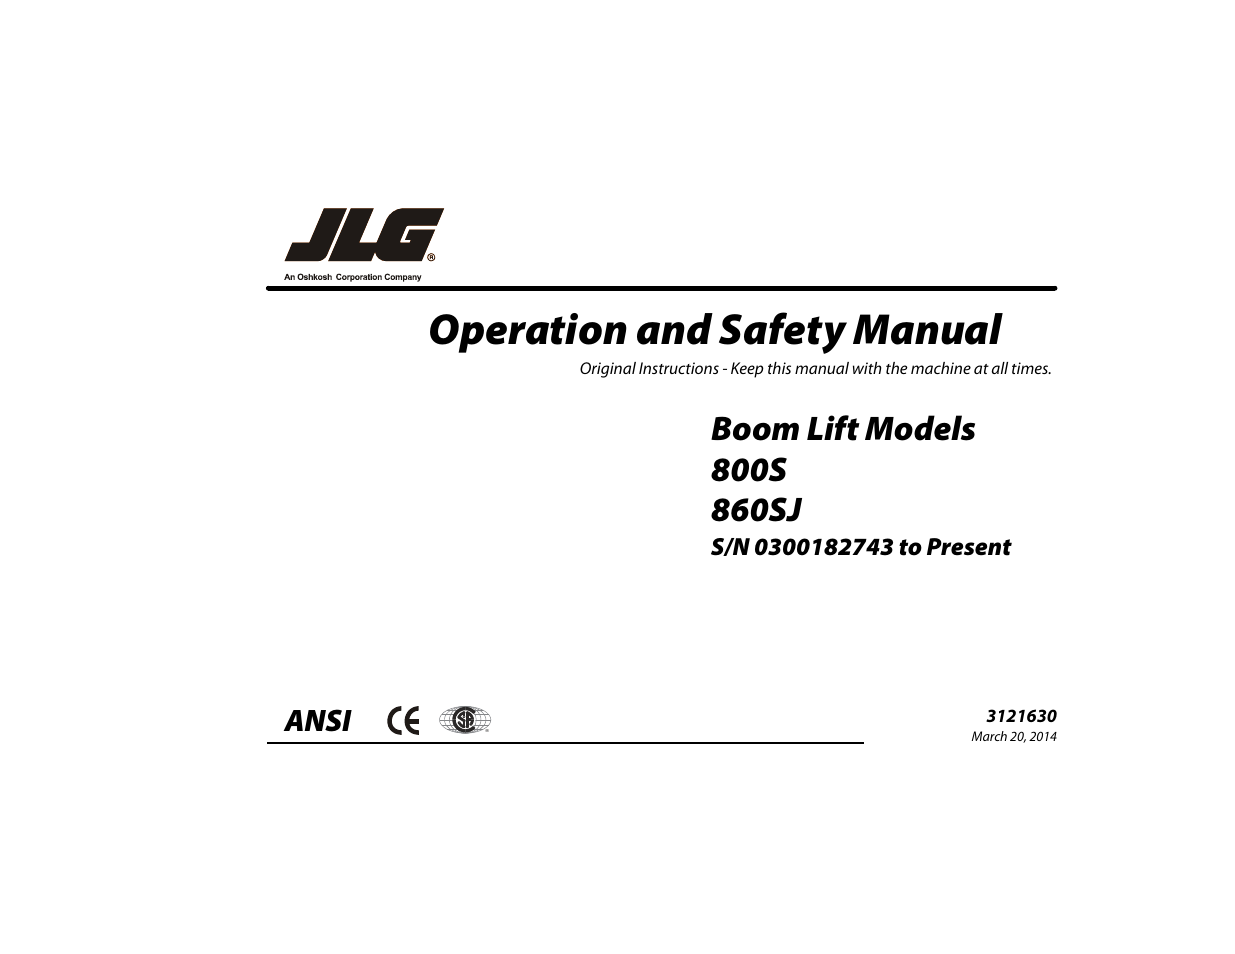 jlg 860sj operator manual user manual 130 pages also for 800s rh manualsdir com jlg scissor lift operators manual jlg boom lift operators manual